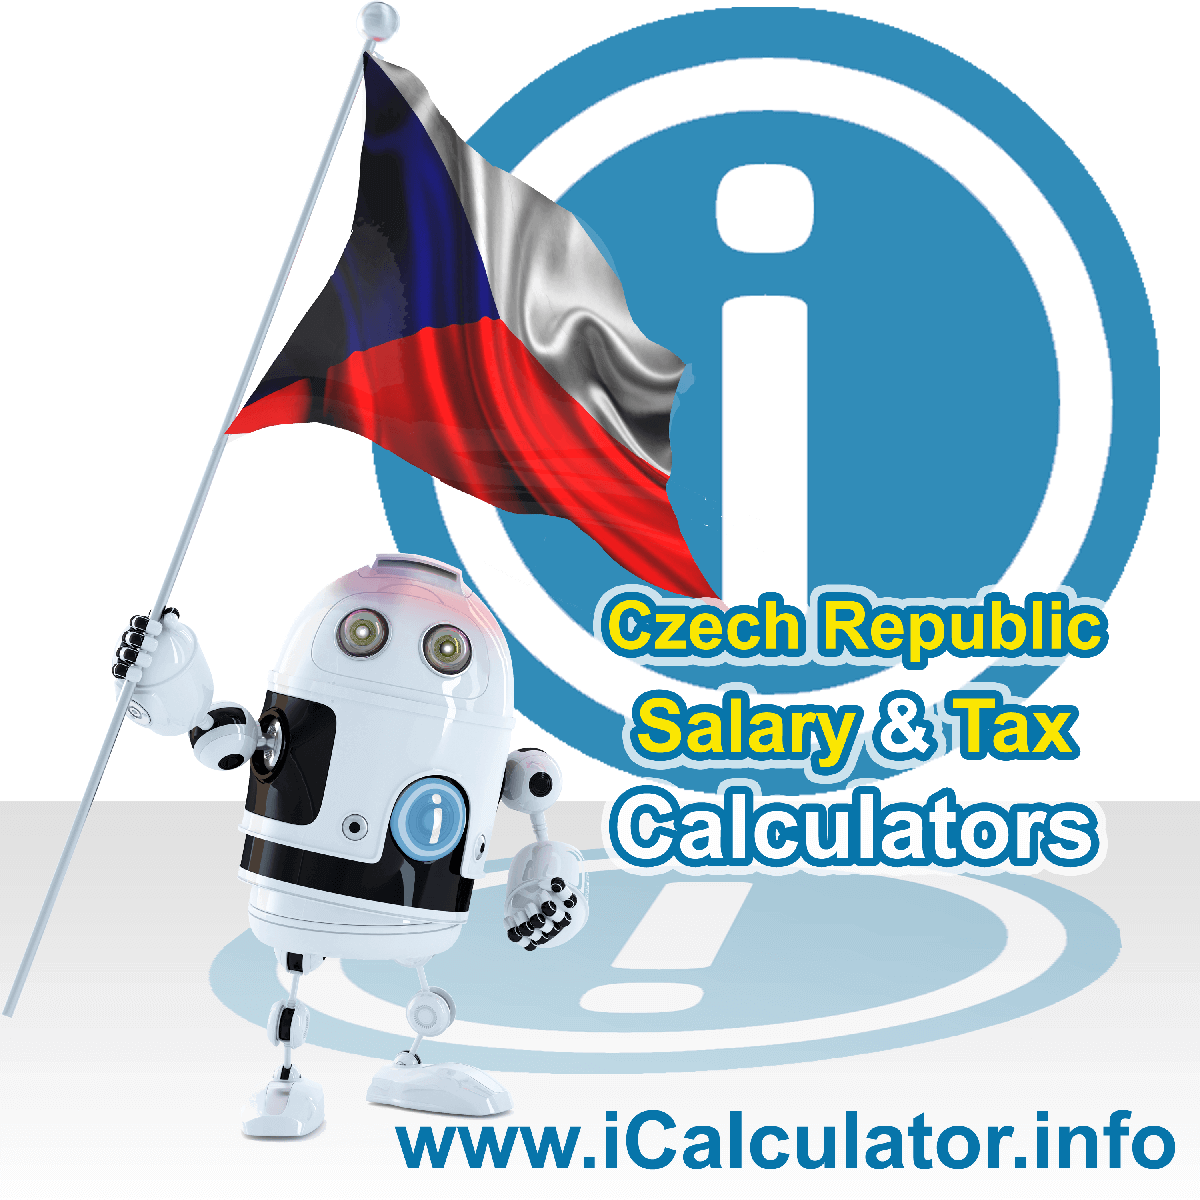 Czech Republic Wage Calculator. This image shows the Czech Republic flag and information relating to the tax formula for the Czech Republic Tax Calculator